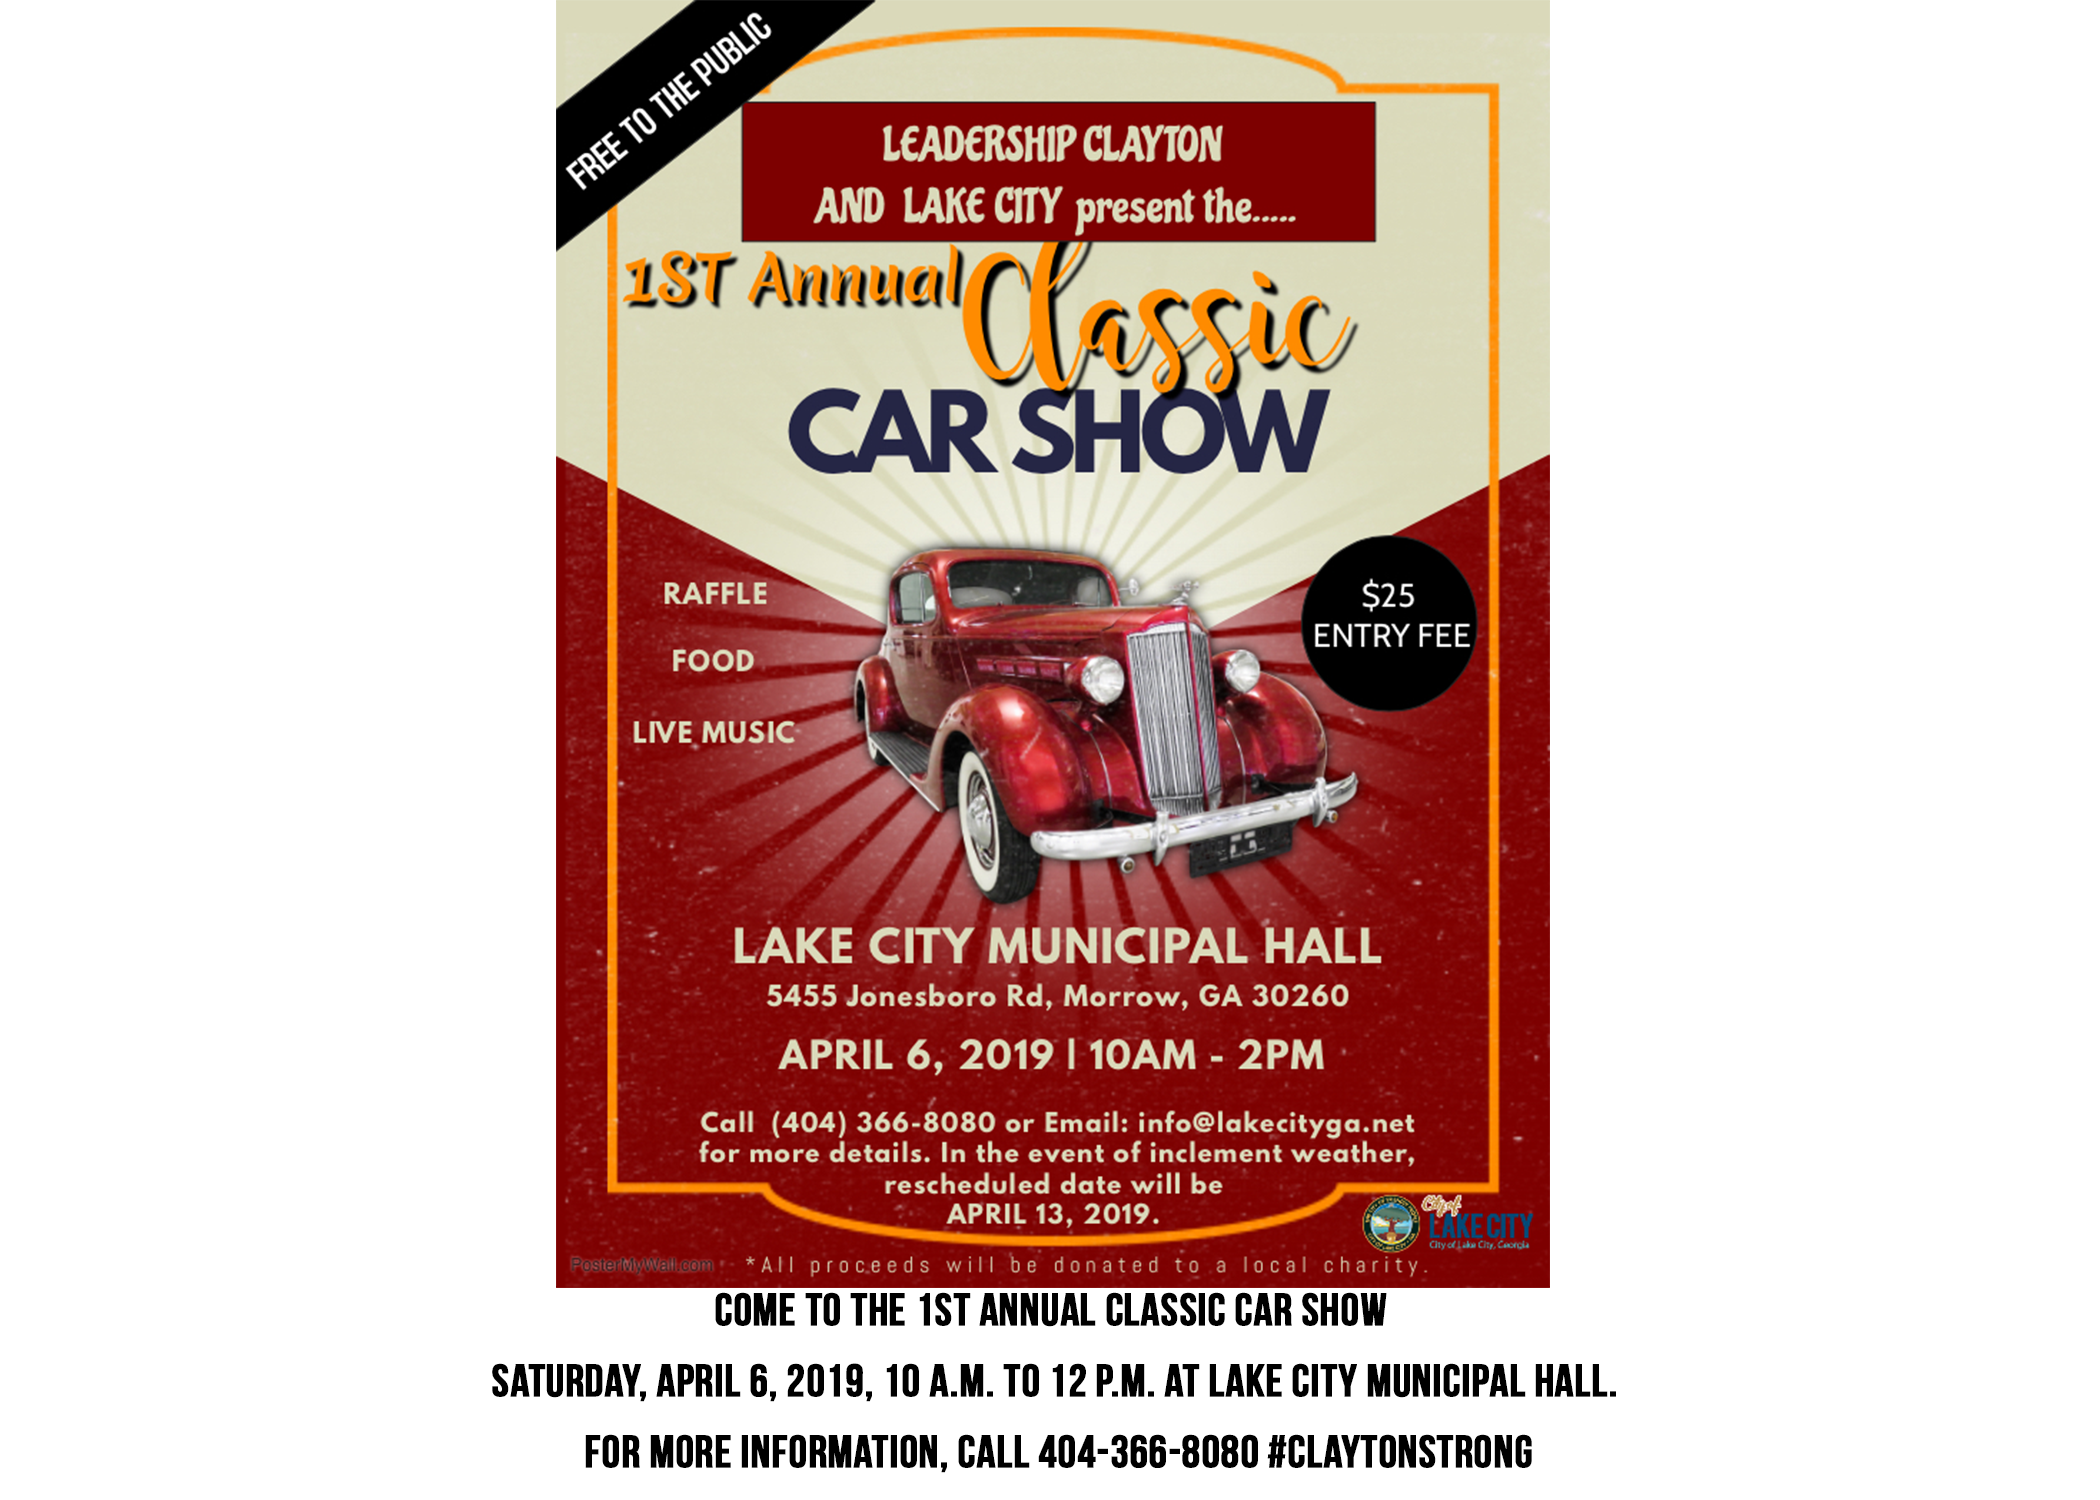 ClassicCarShow